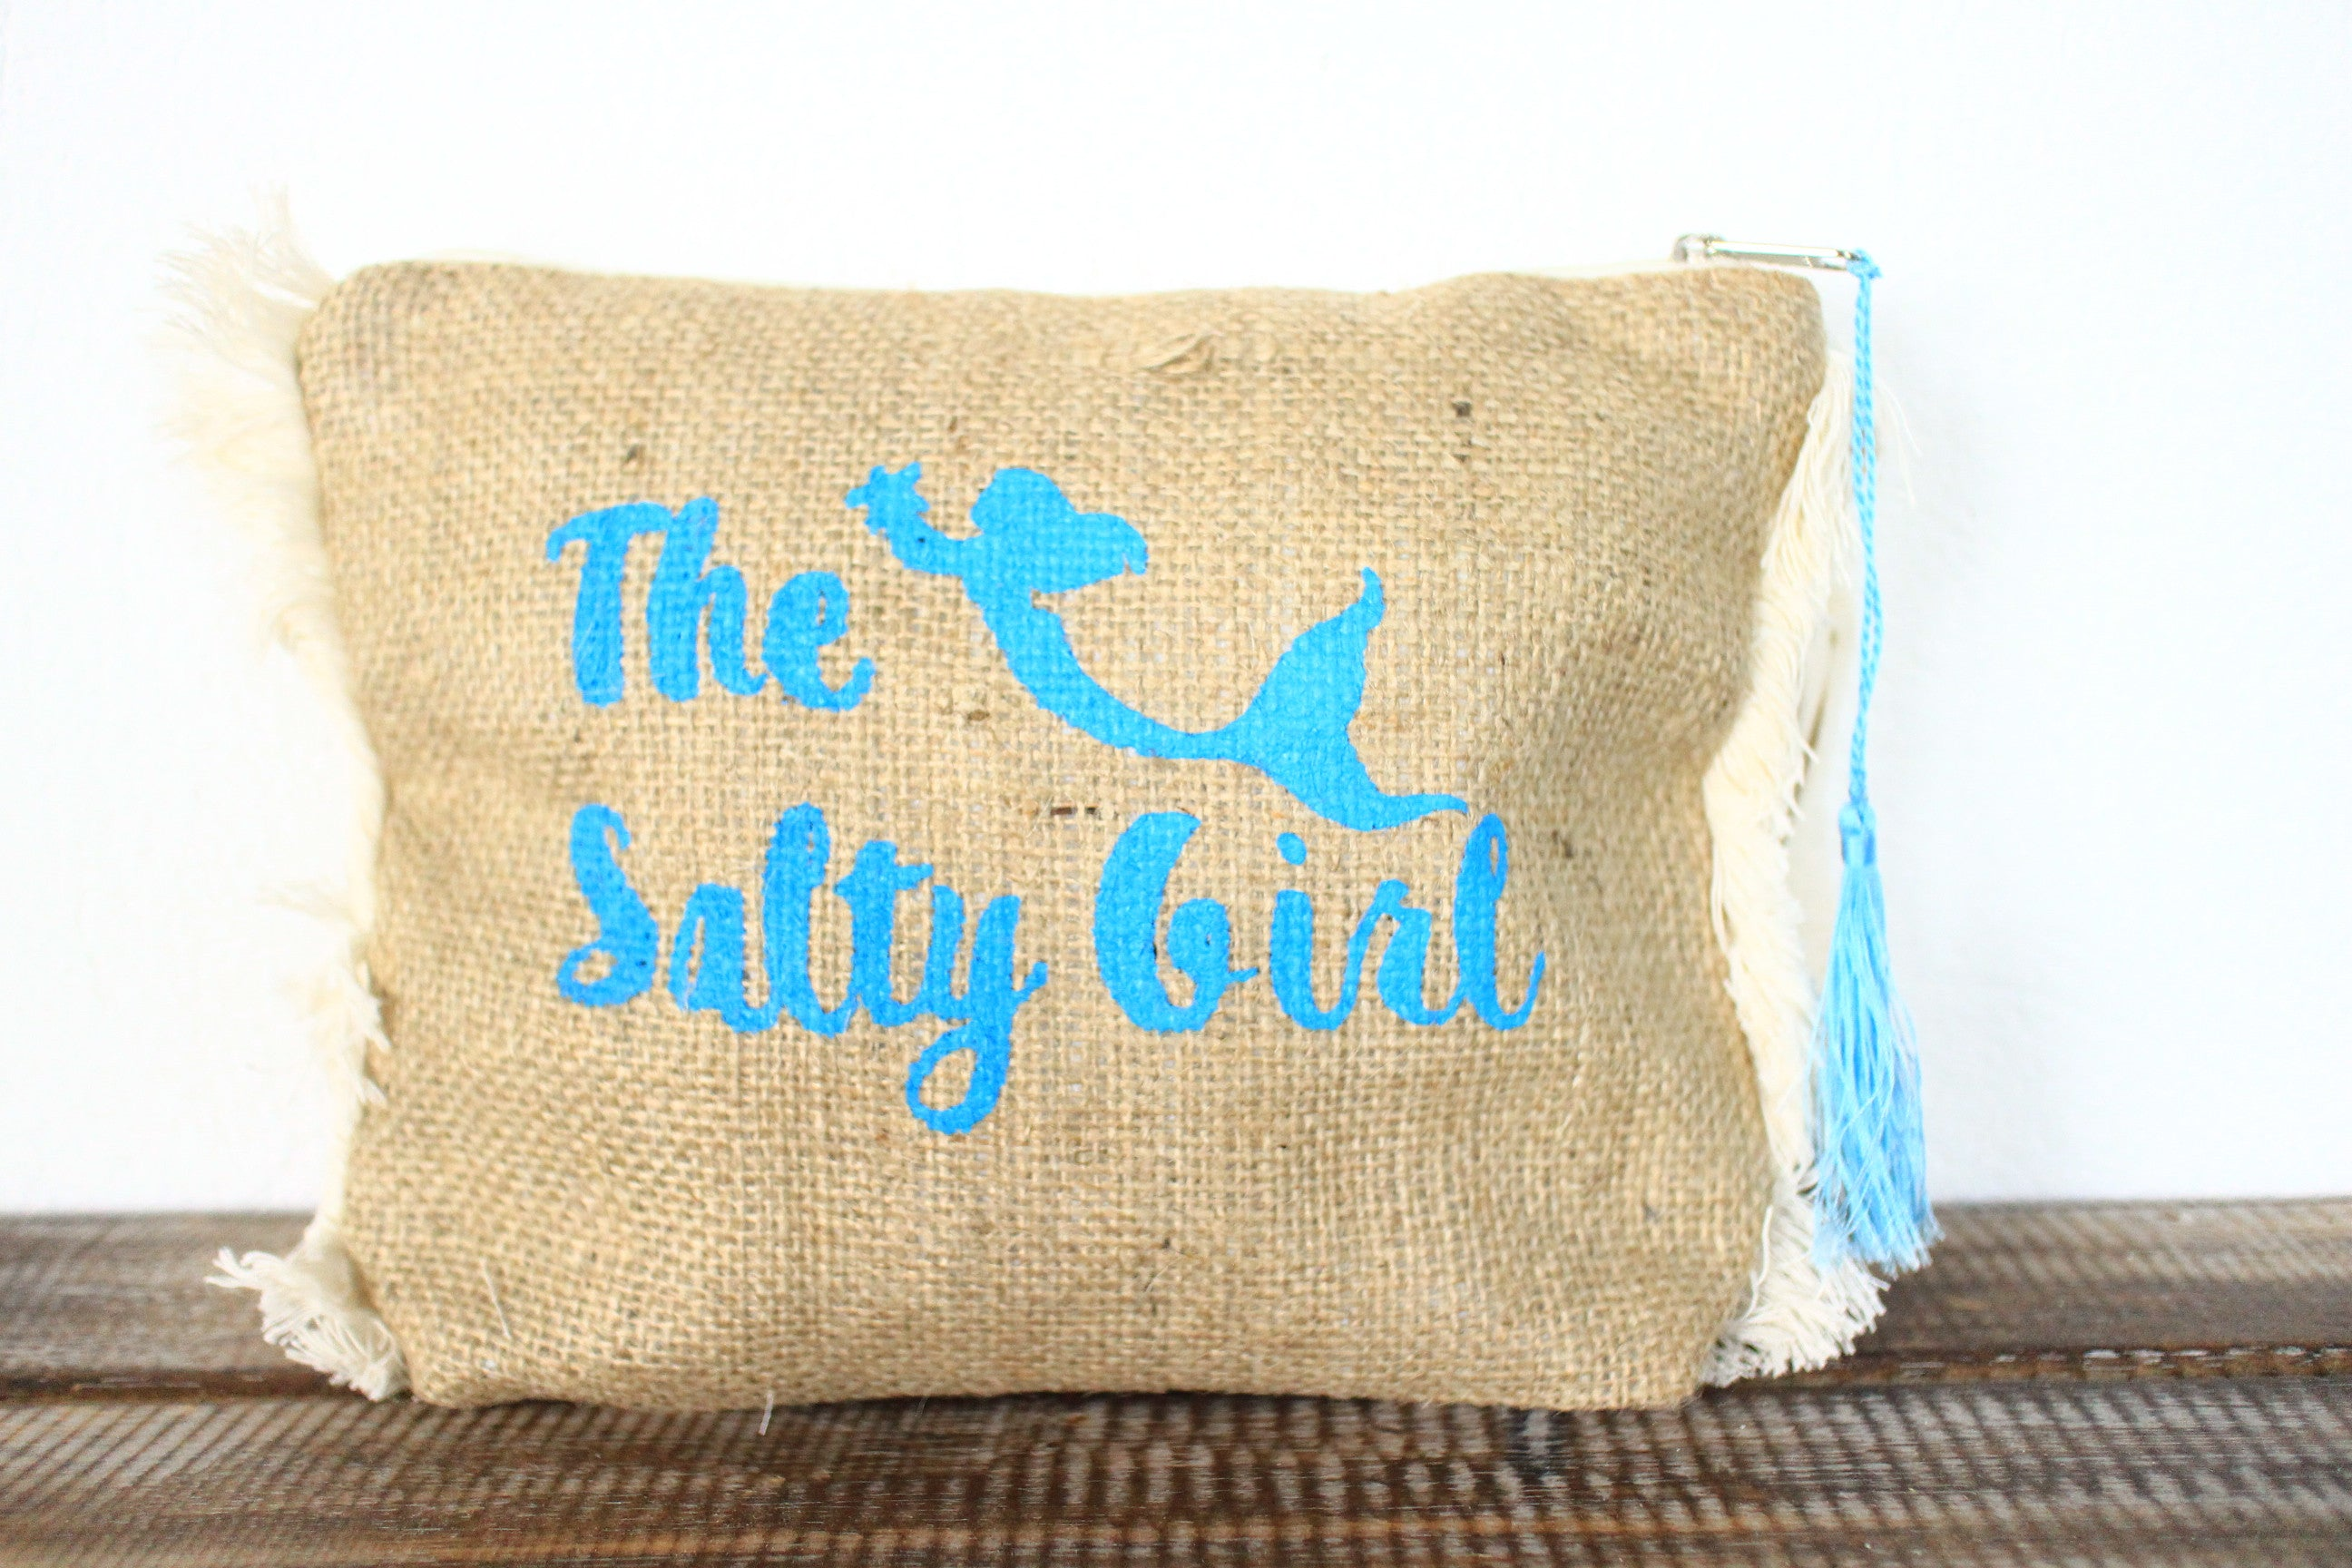 THE SALTY GIRL POUCH